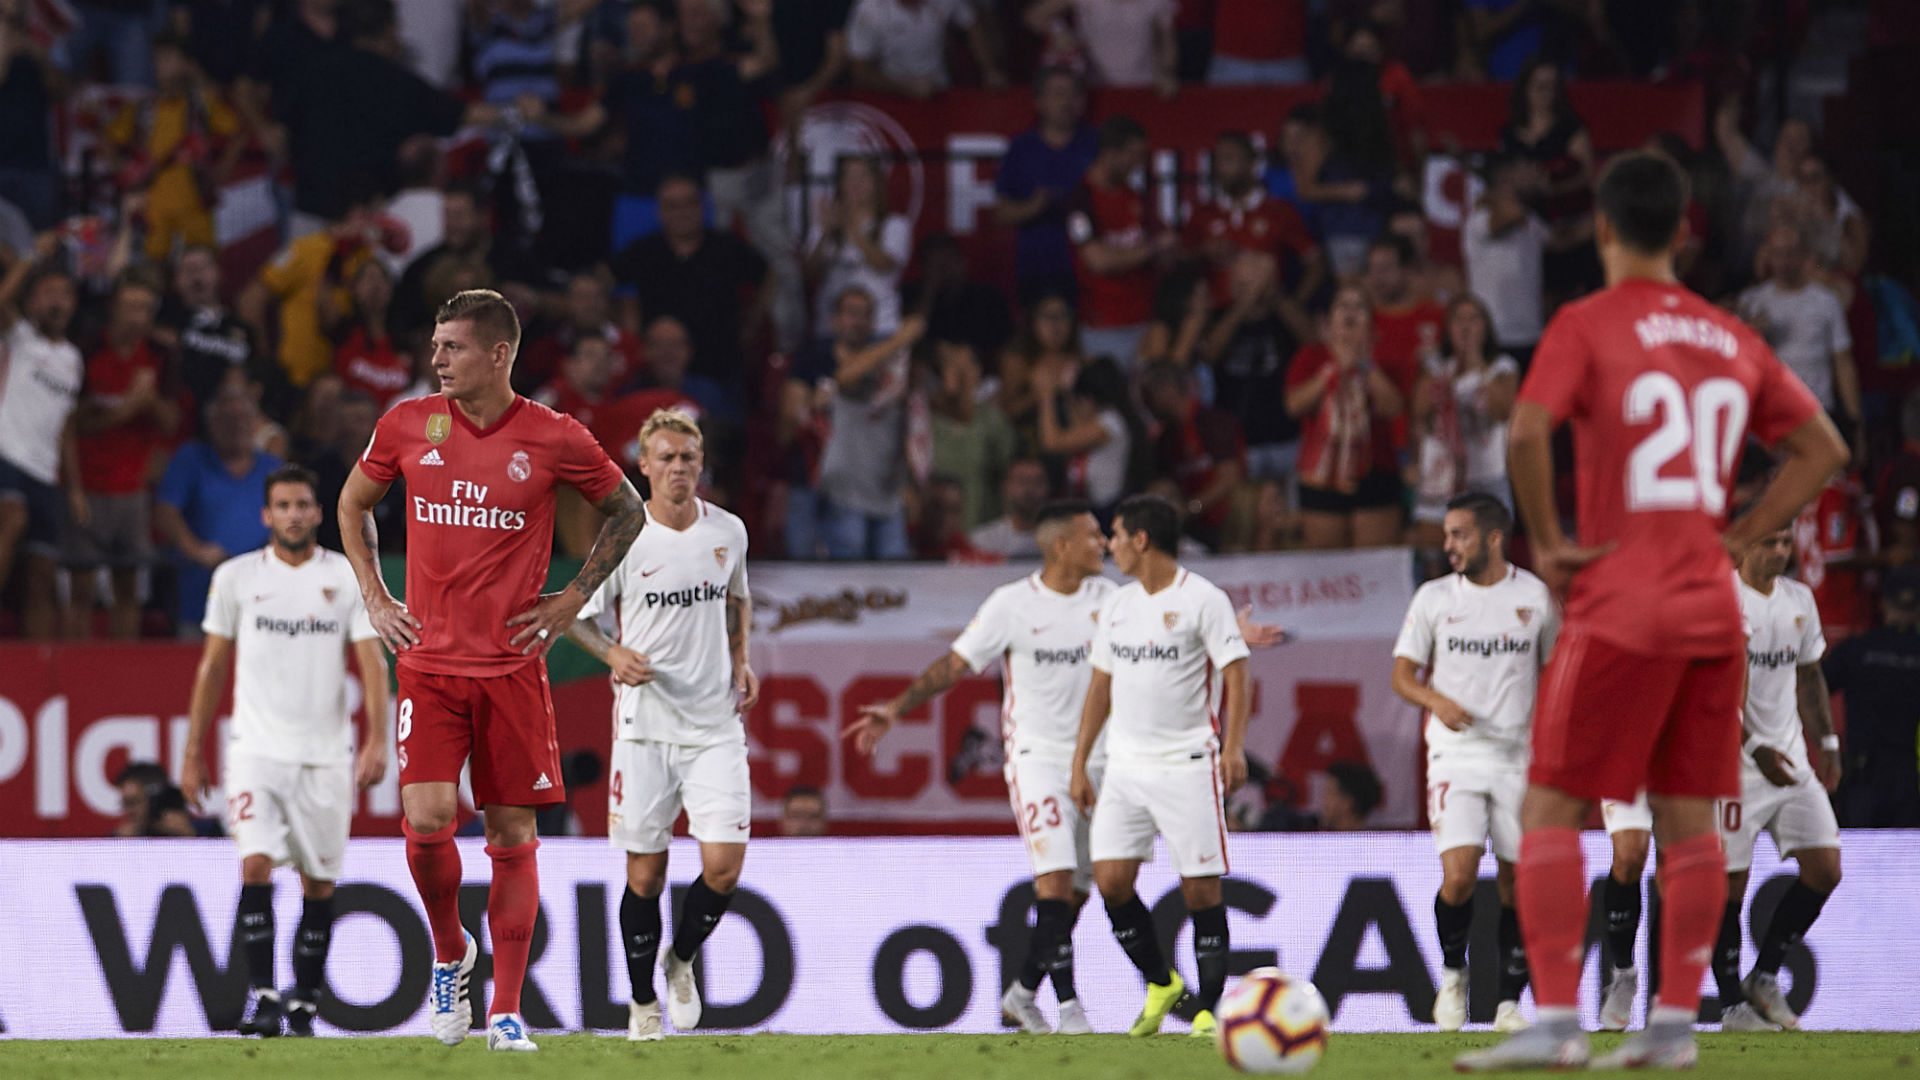 Casemiro slams Real Madrid's lost 45 minutes in Sevilla defeat